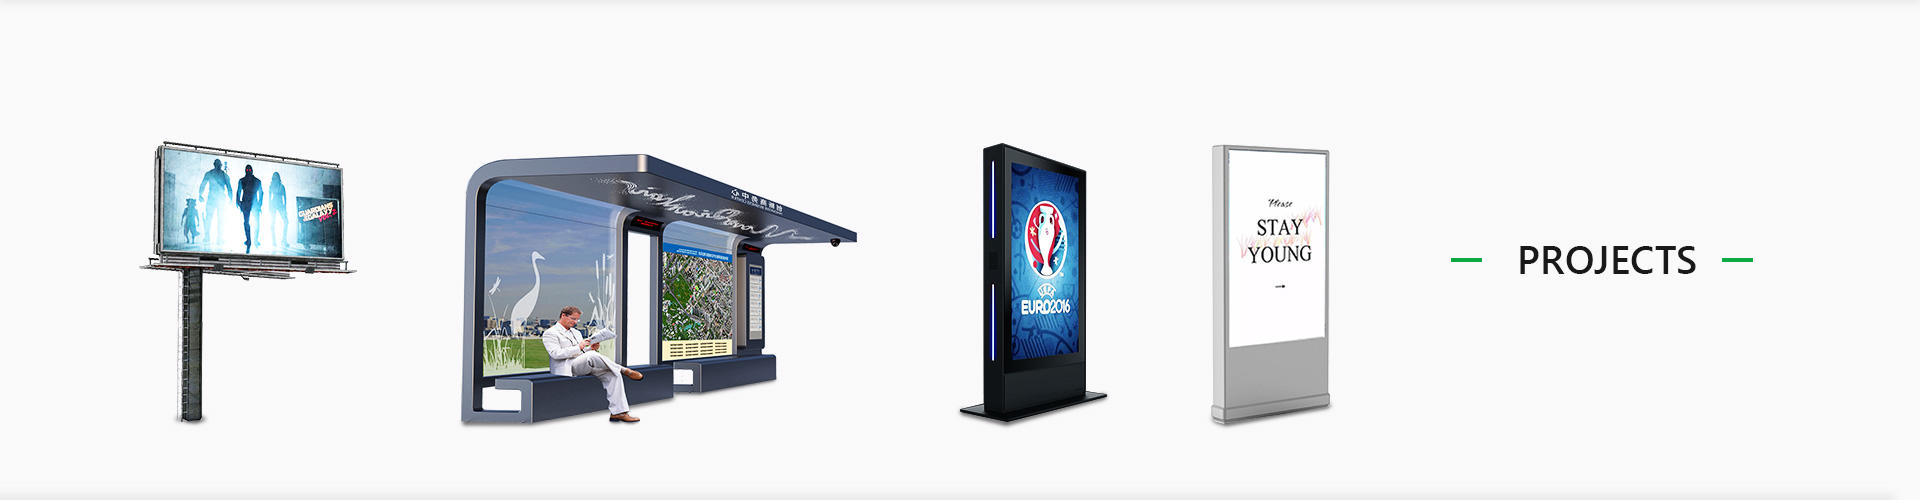 application-Best Billboard Structure Manufacturers Billboard Structure And -YEROO-img